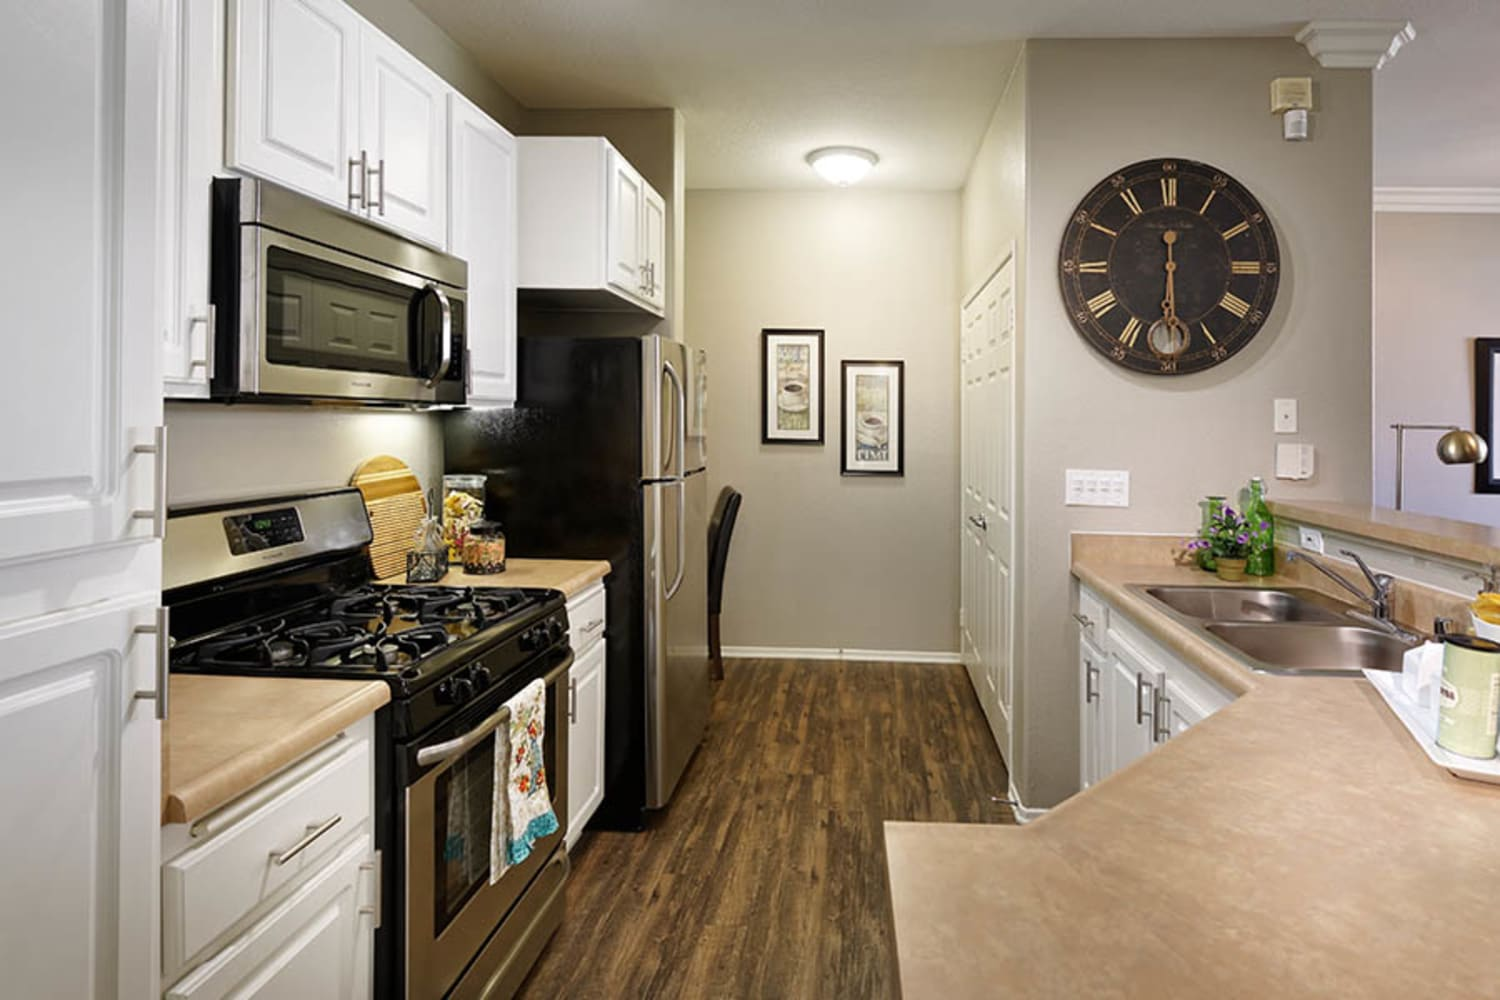 Camino Real offers updated kitchens complete with white cabinets in Rancho Cucamonga, California